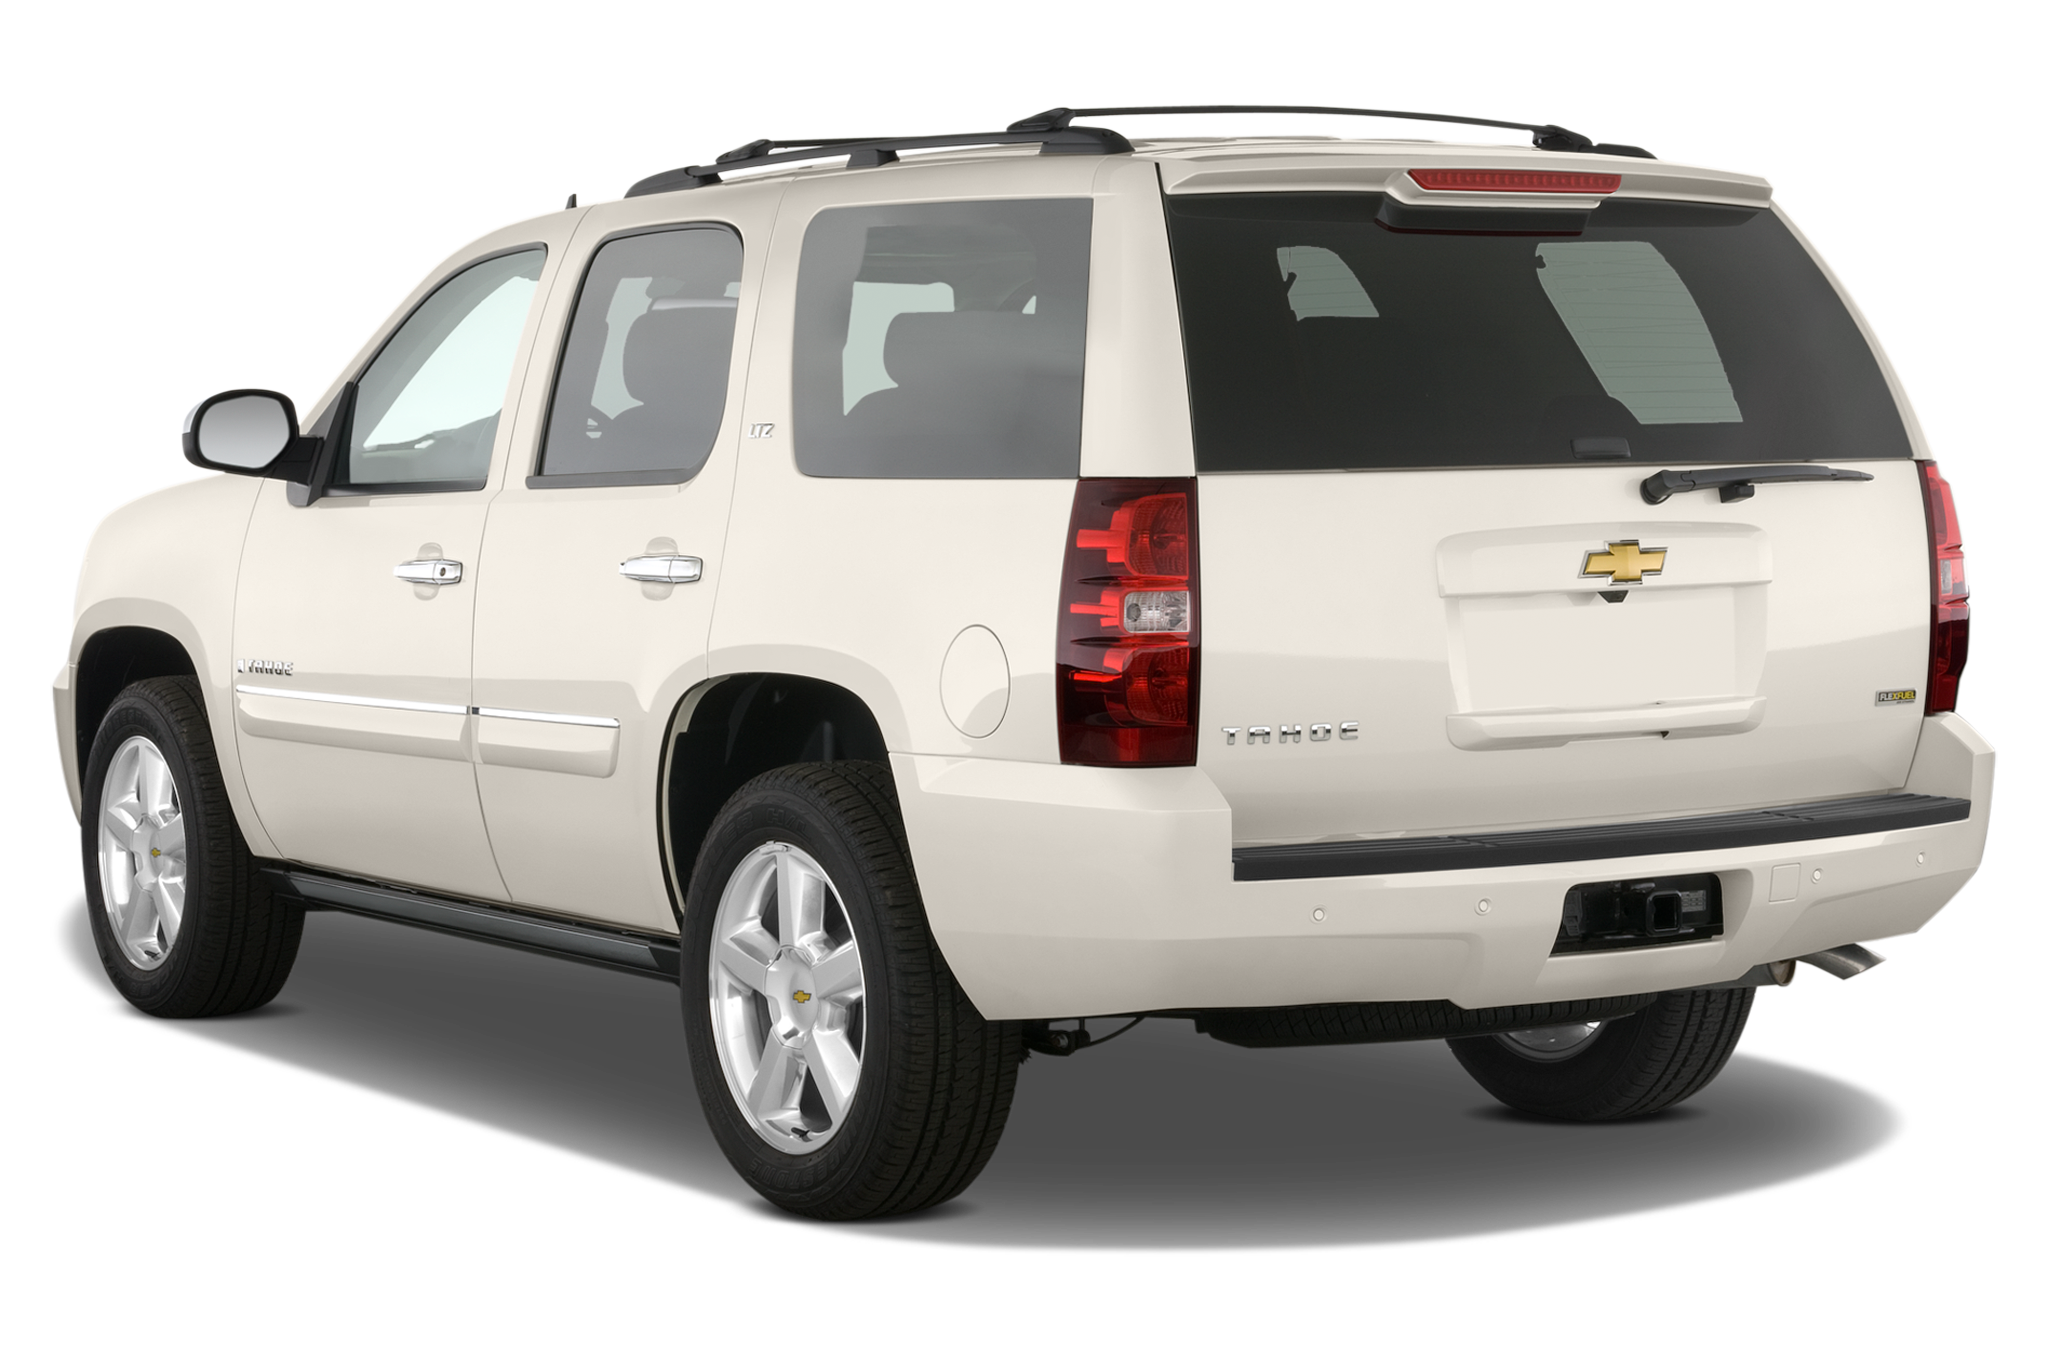 oklahoma used rwd chevrolet ltz city utility sport pre inventory tahoe owned